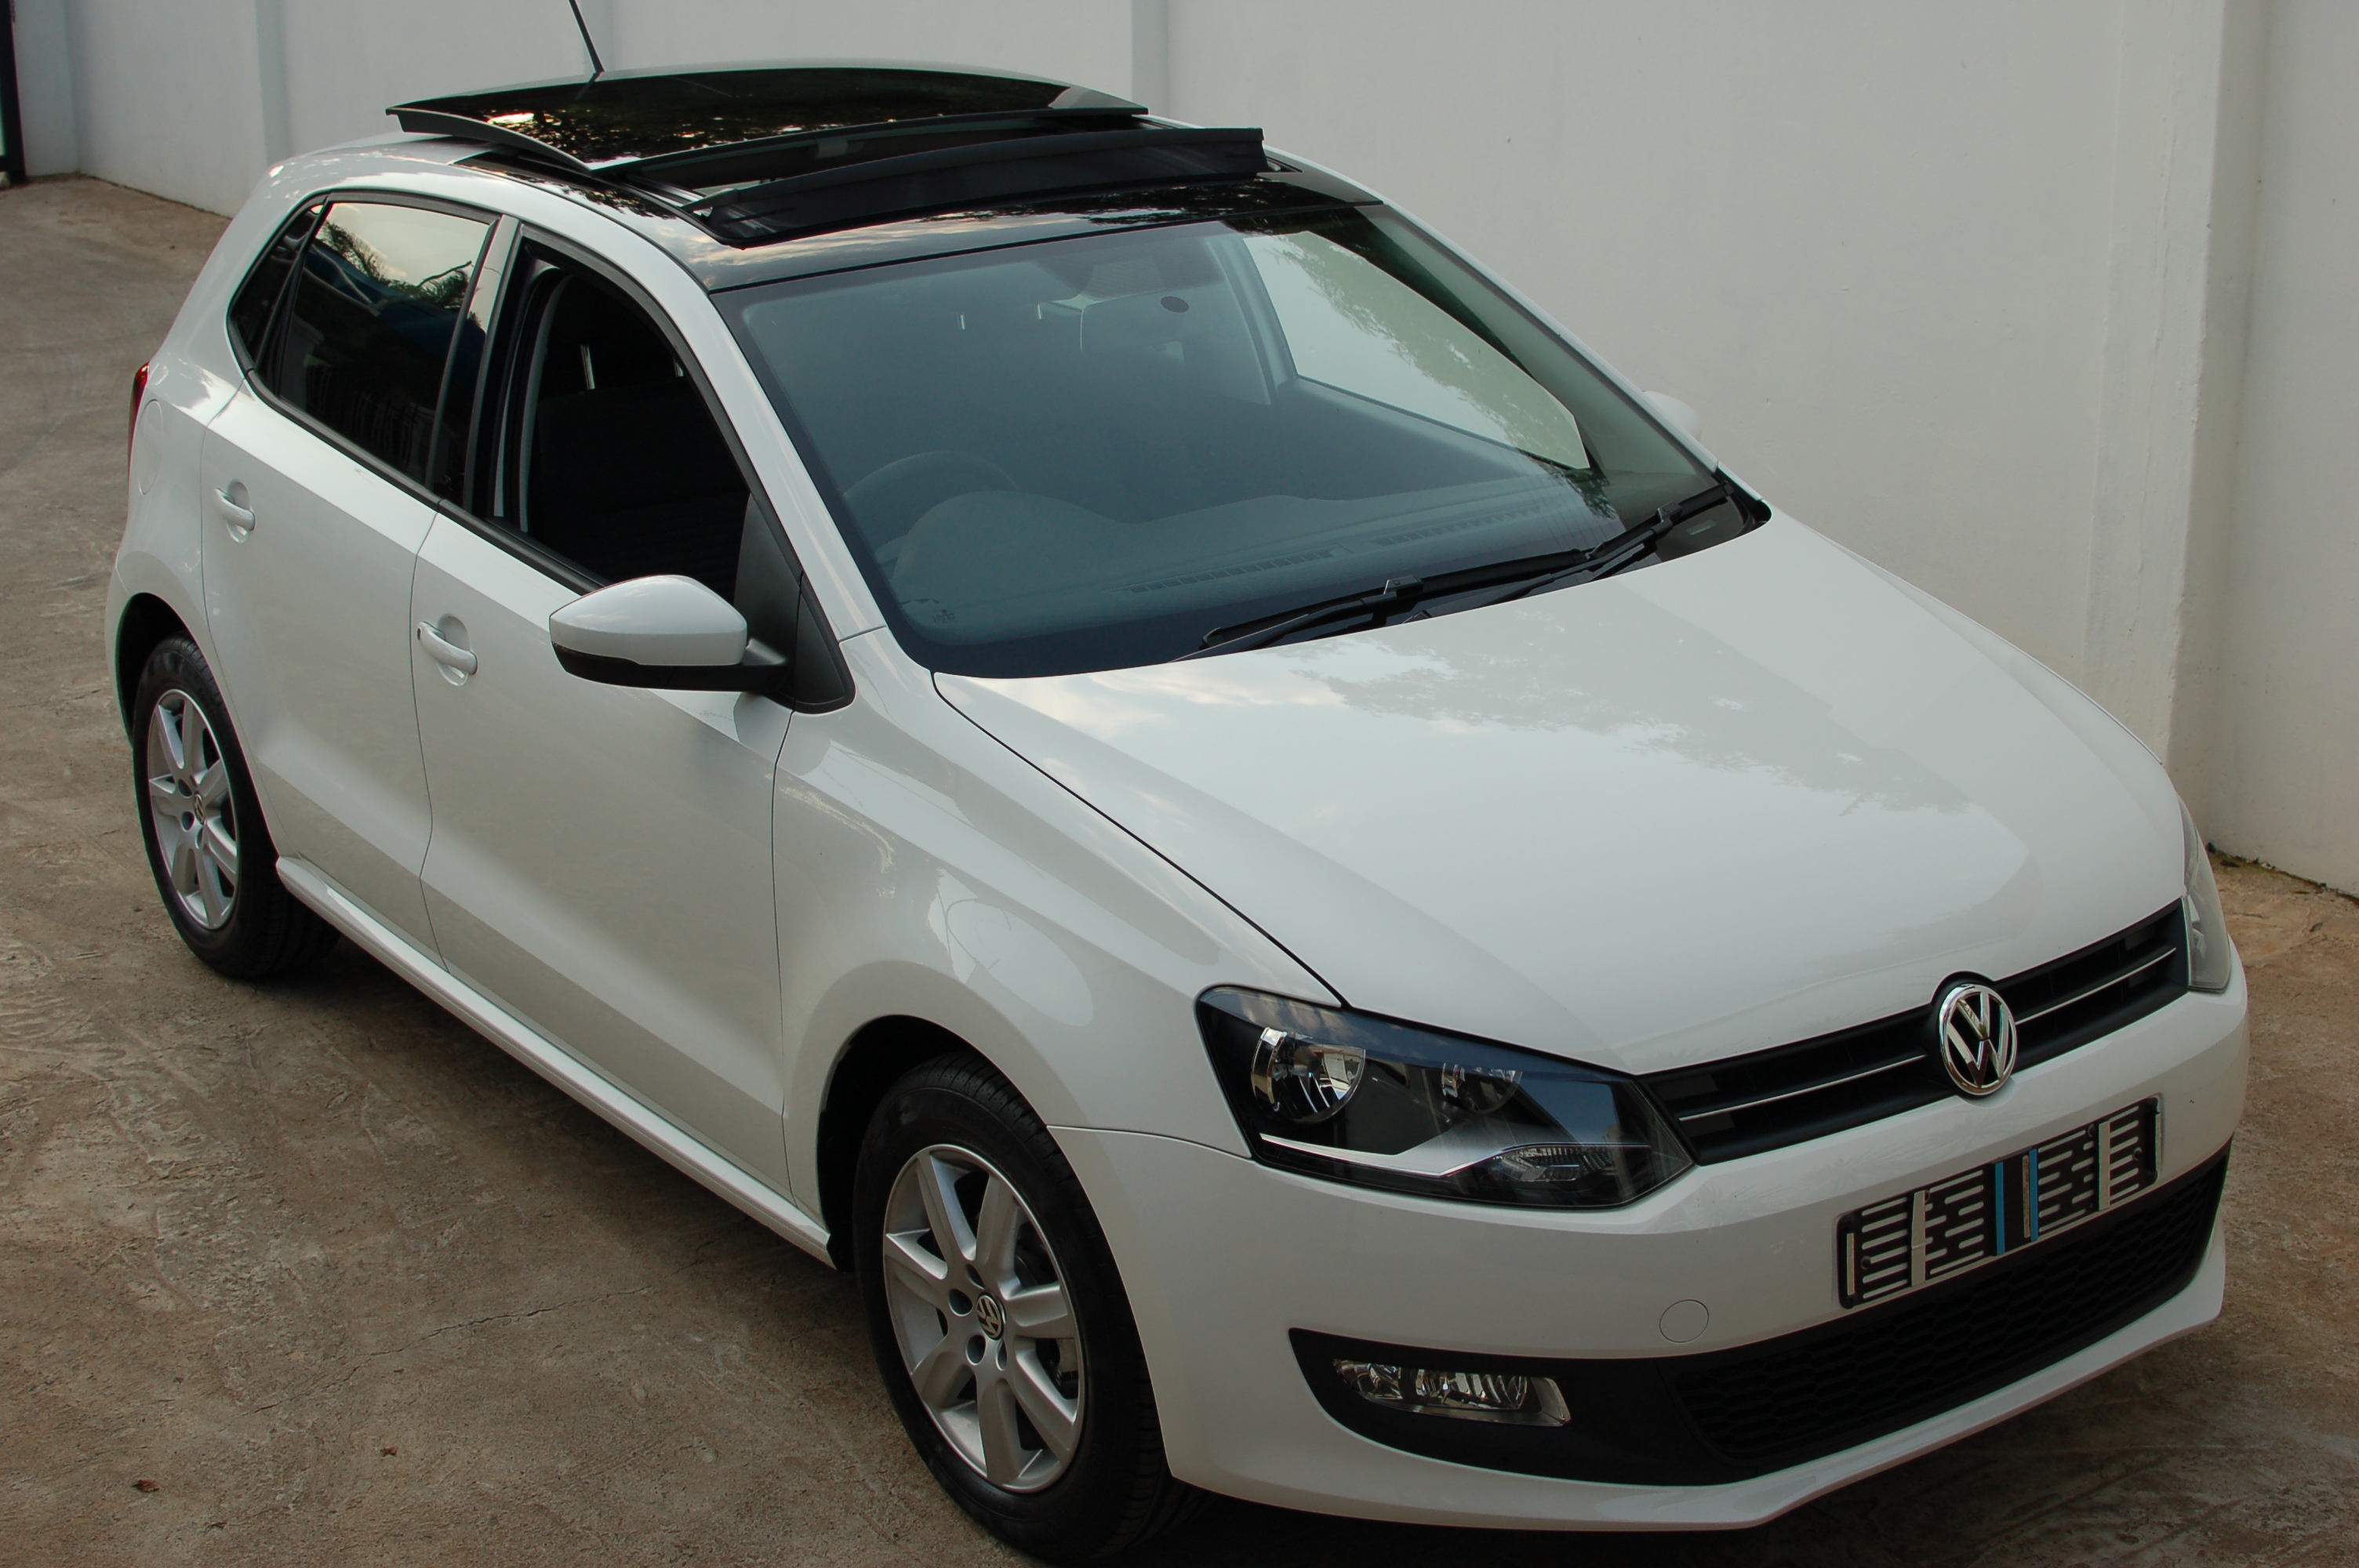 vw polo 1 6 panoramic sunroof flickr photo sharing. Black Bedroom Furniture Sets. Home Design Ideas